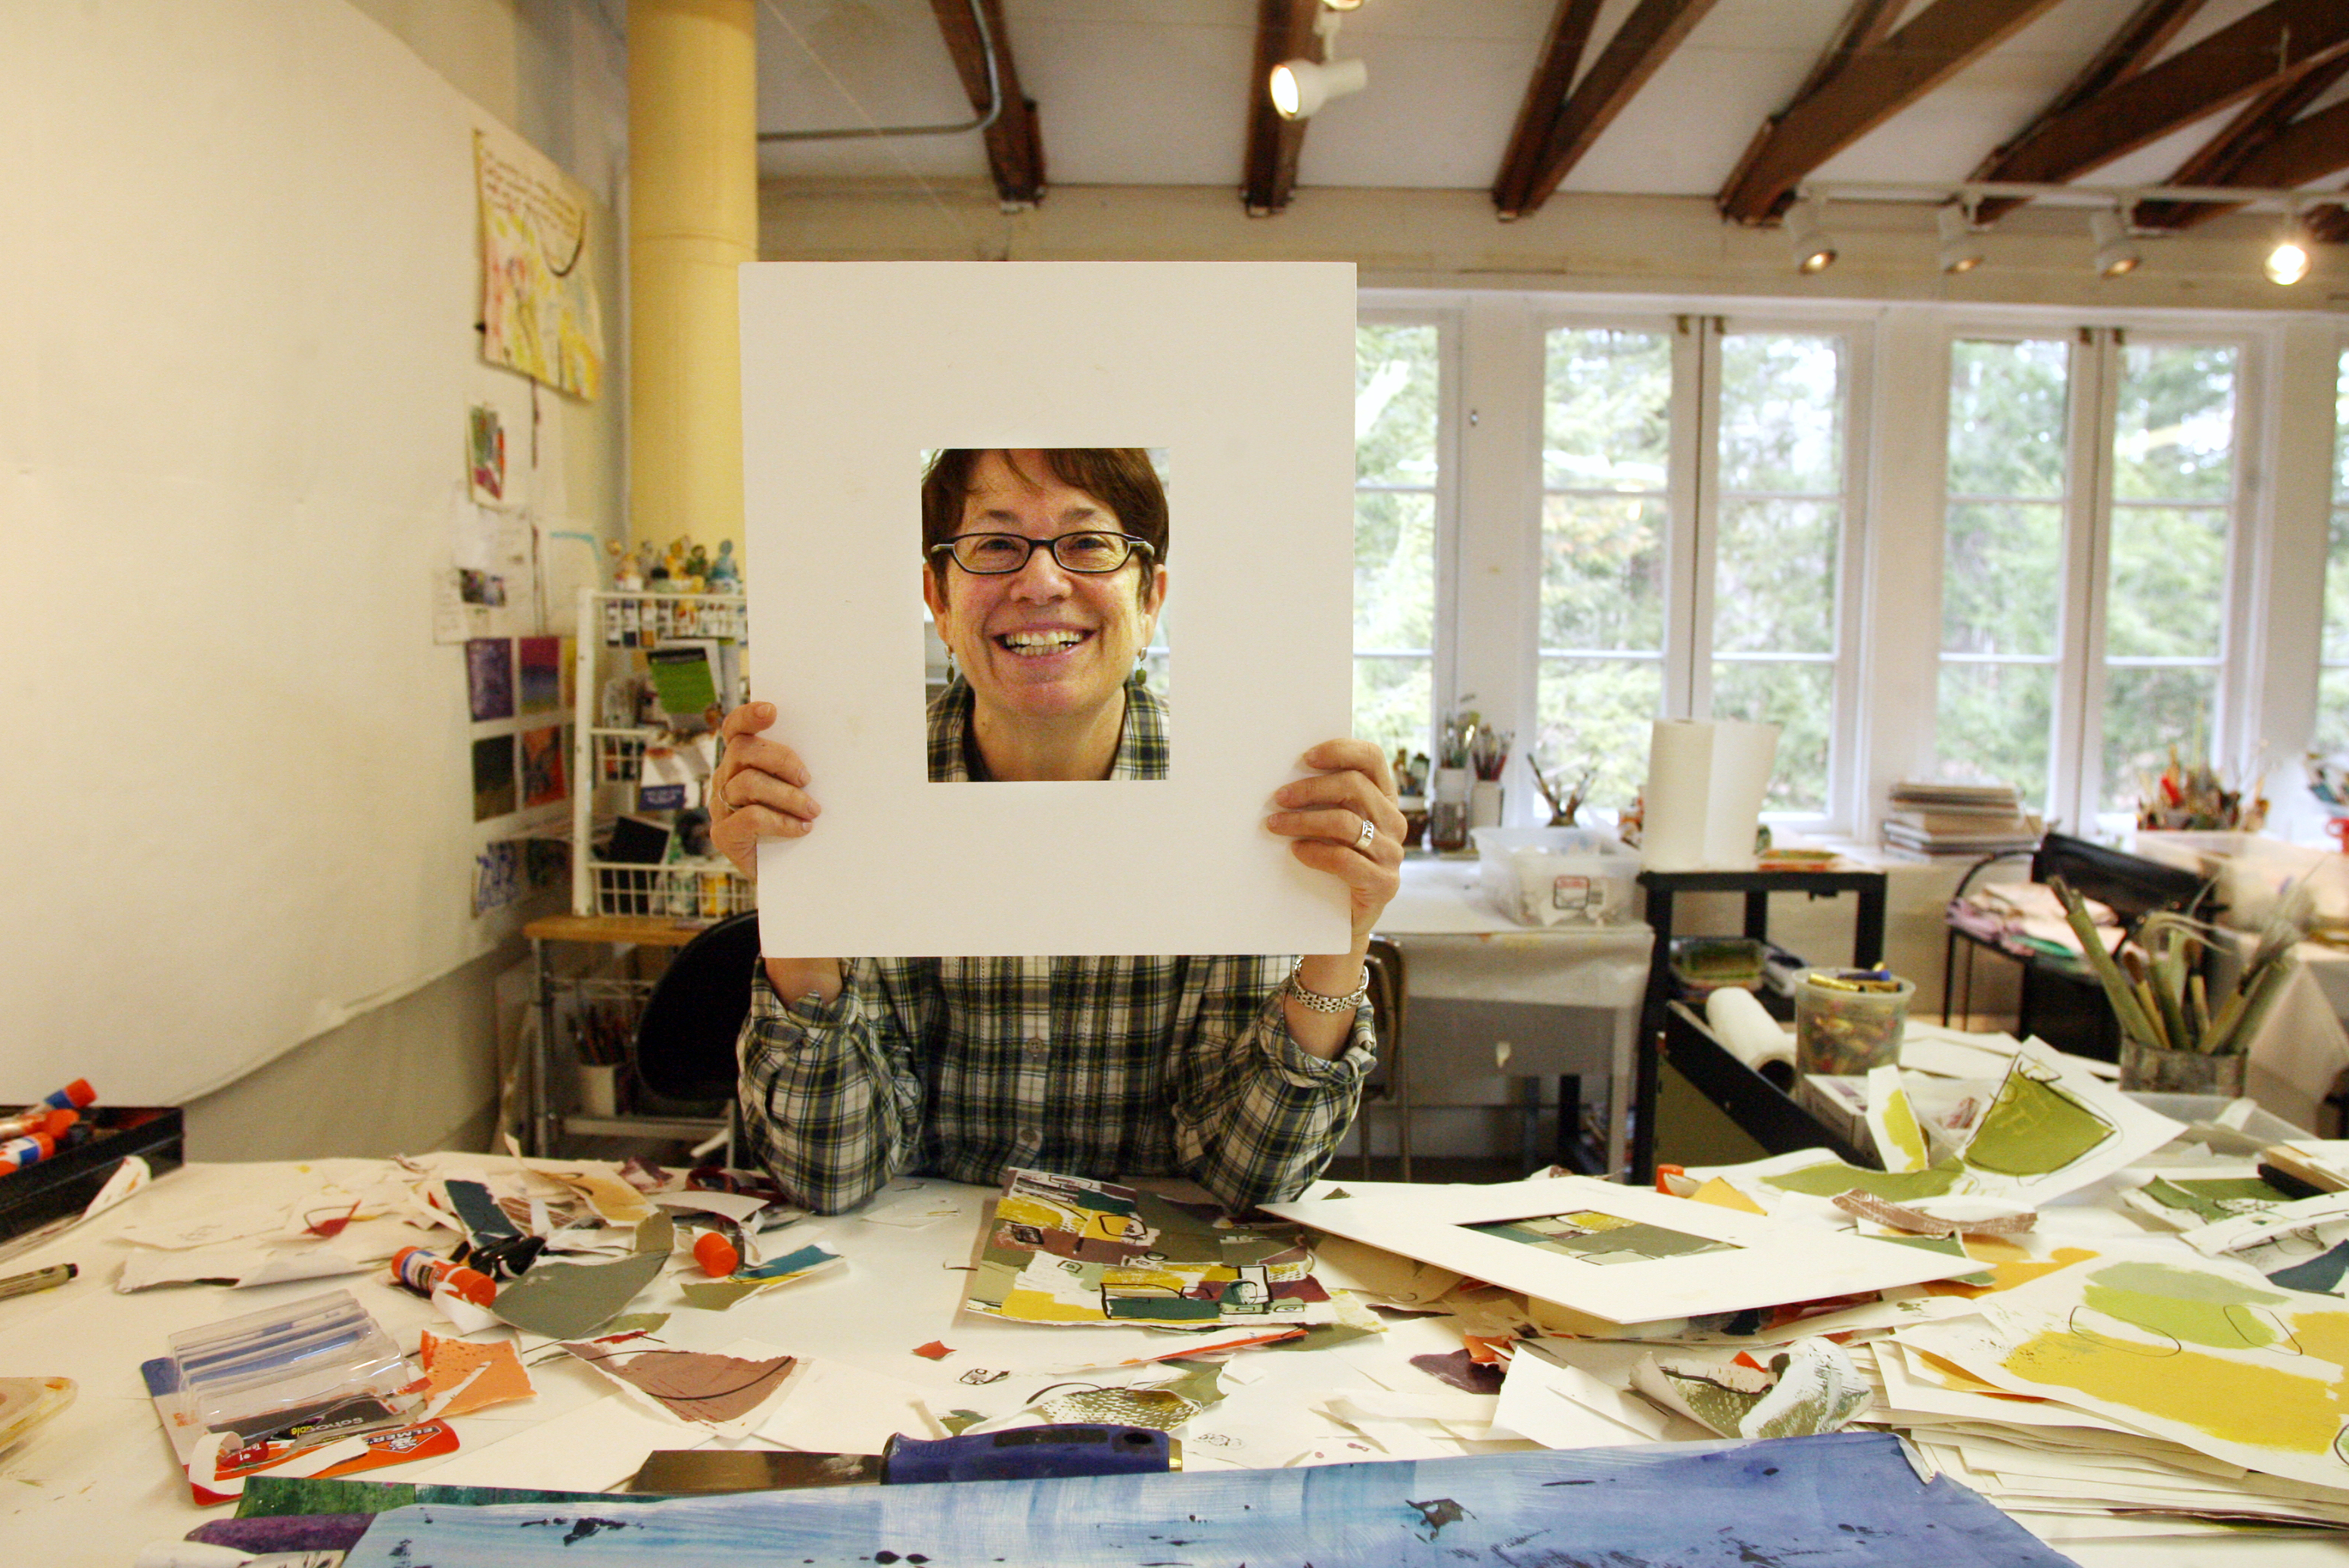 C. Dianne Zweig, a mixed media artist, uses collage to create abstract images in her studio at the Farmington Valley Arts Center.